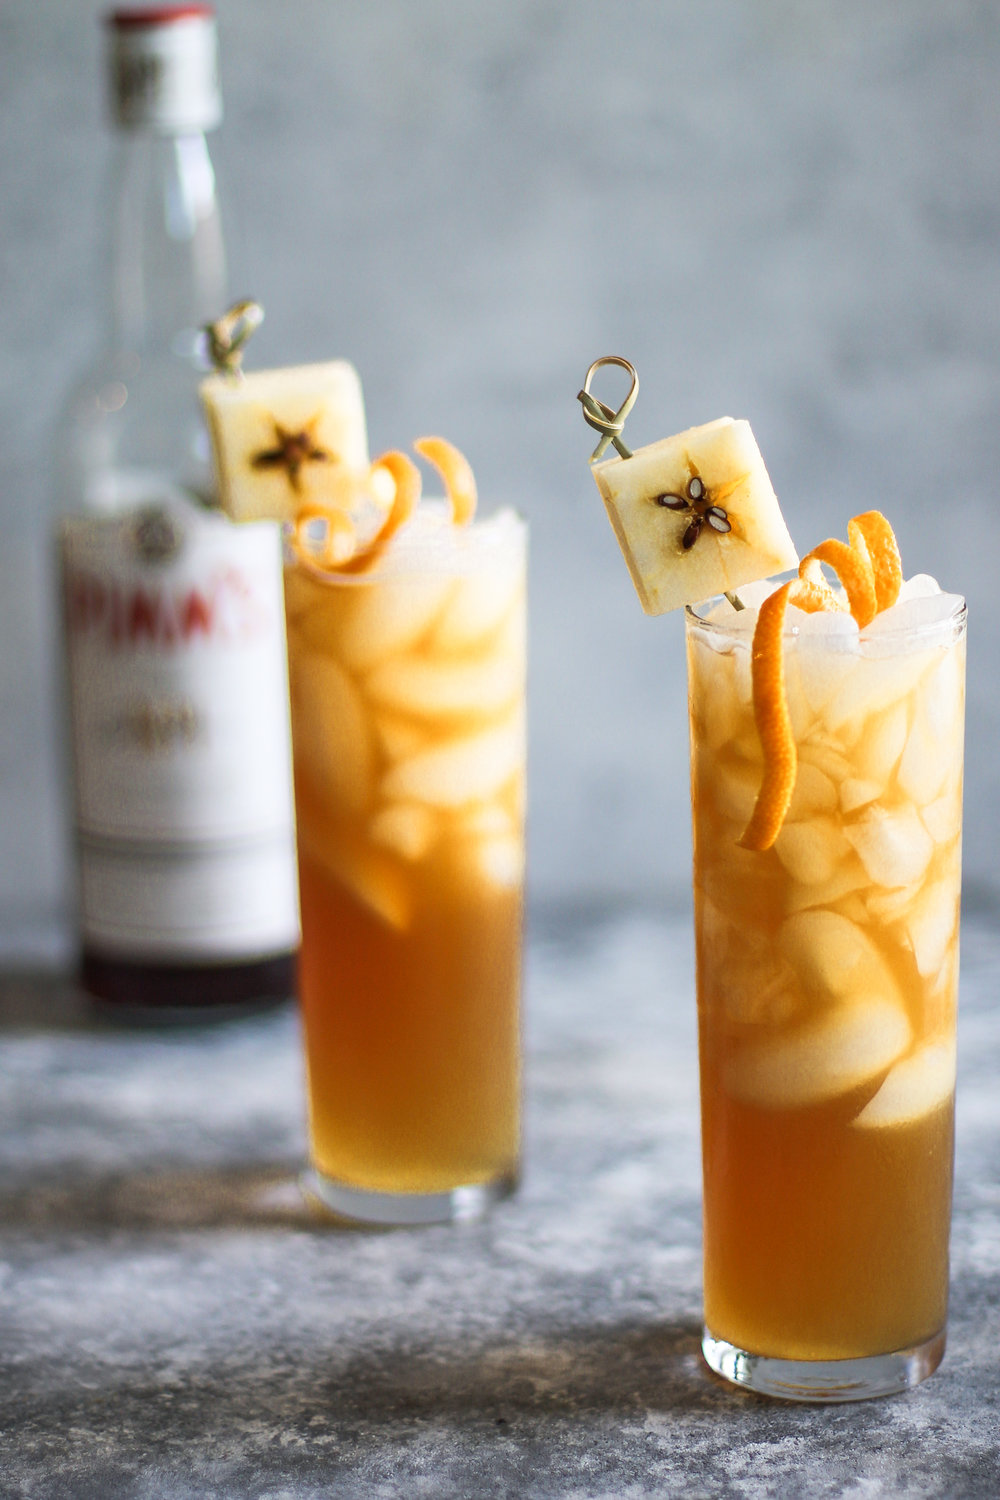 Apple Cider Pimm's Cup: My Diary of Us